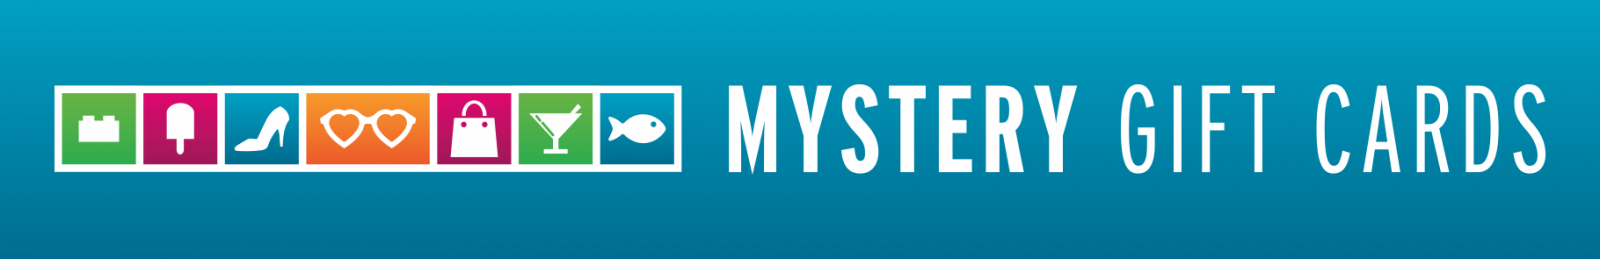 Mystery Gift Cards - Mall of America